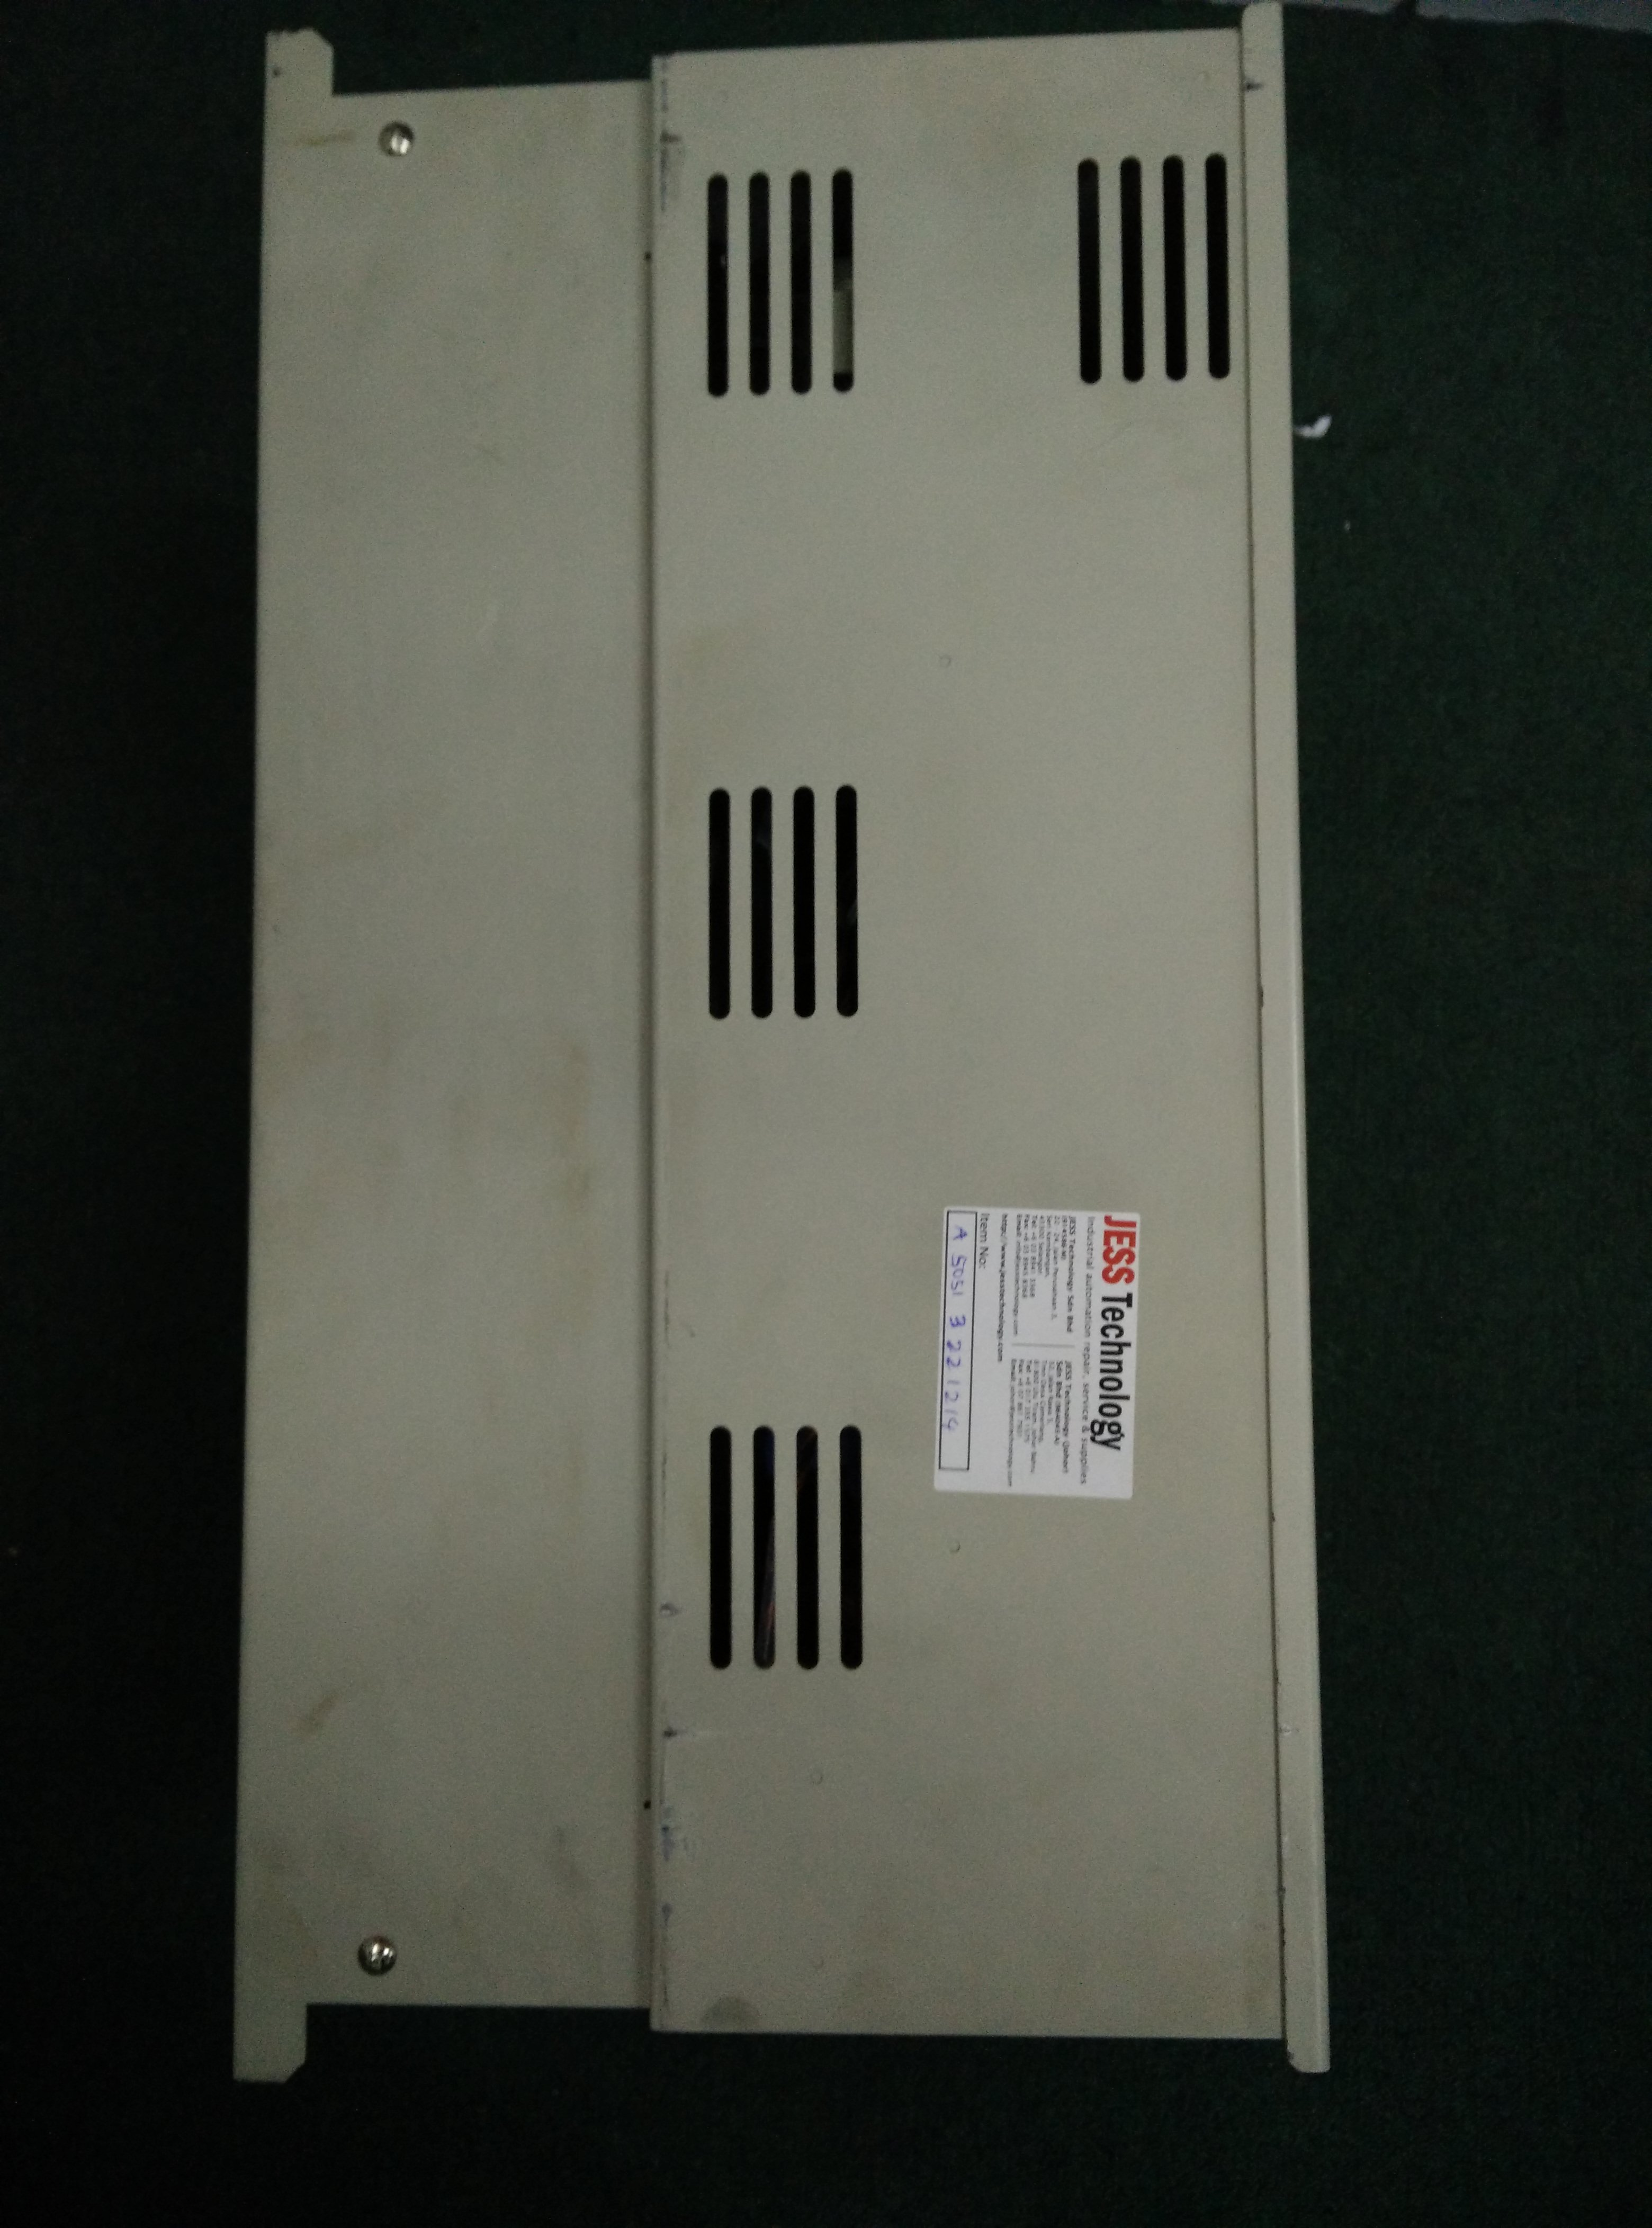 Repair VFC-1200F4022 SIEMENS VARIABLE FREQUENCY CONTROLLER in Malaysia, Singapore, Thailand, Indonesia